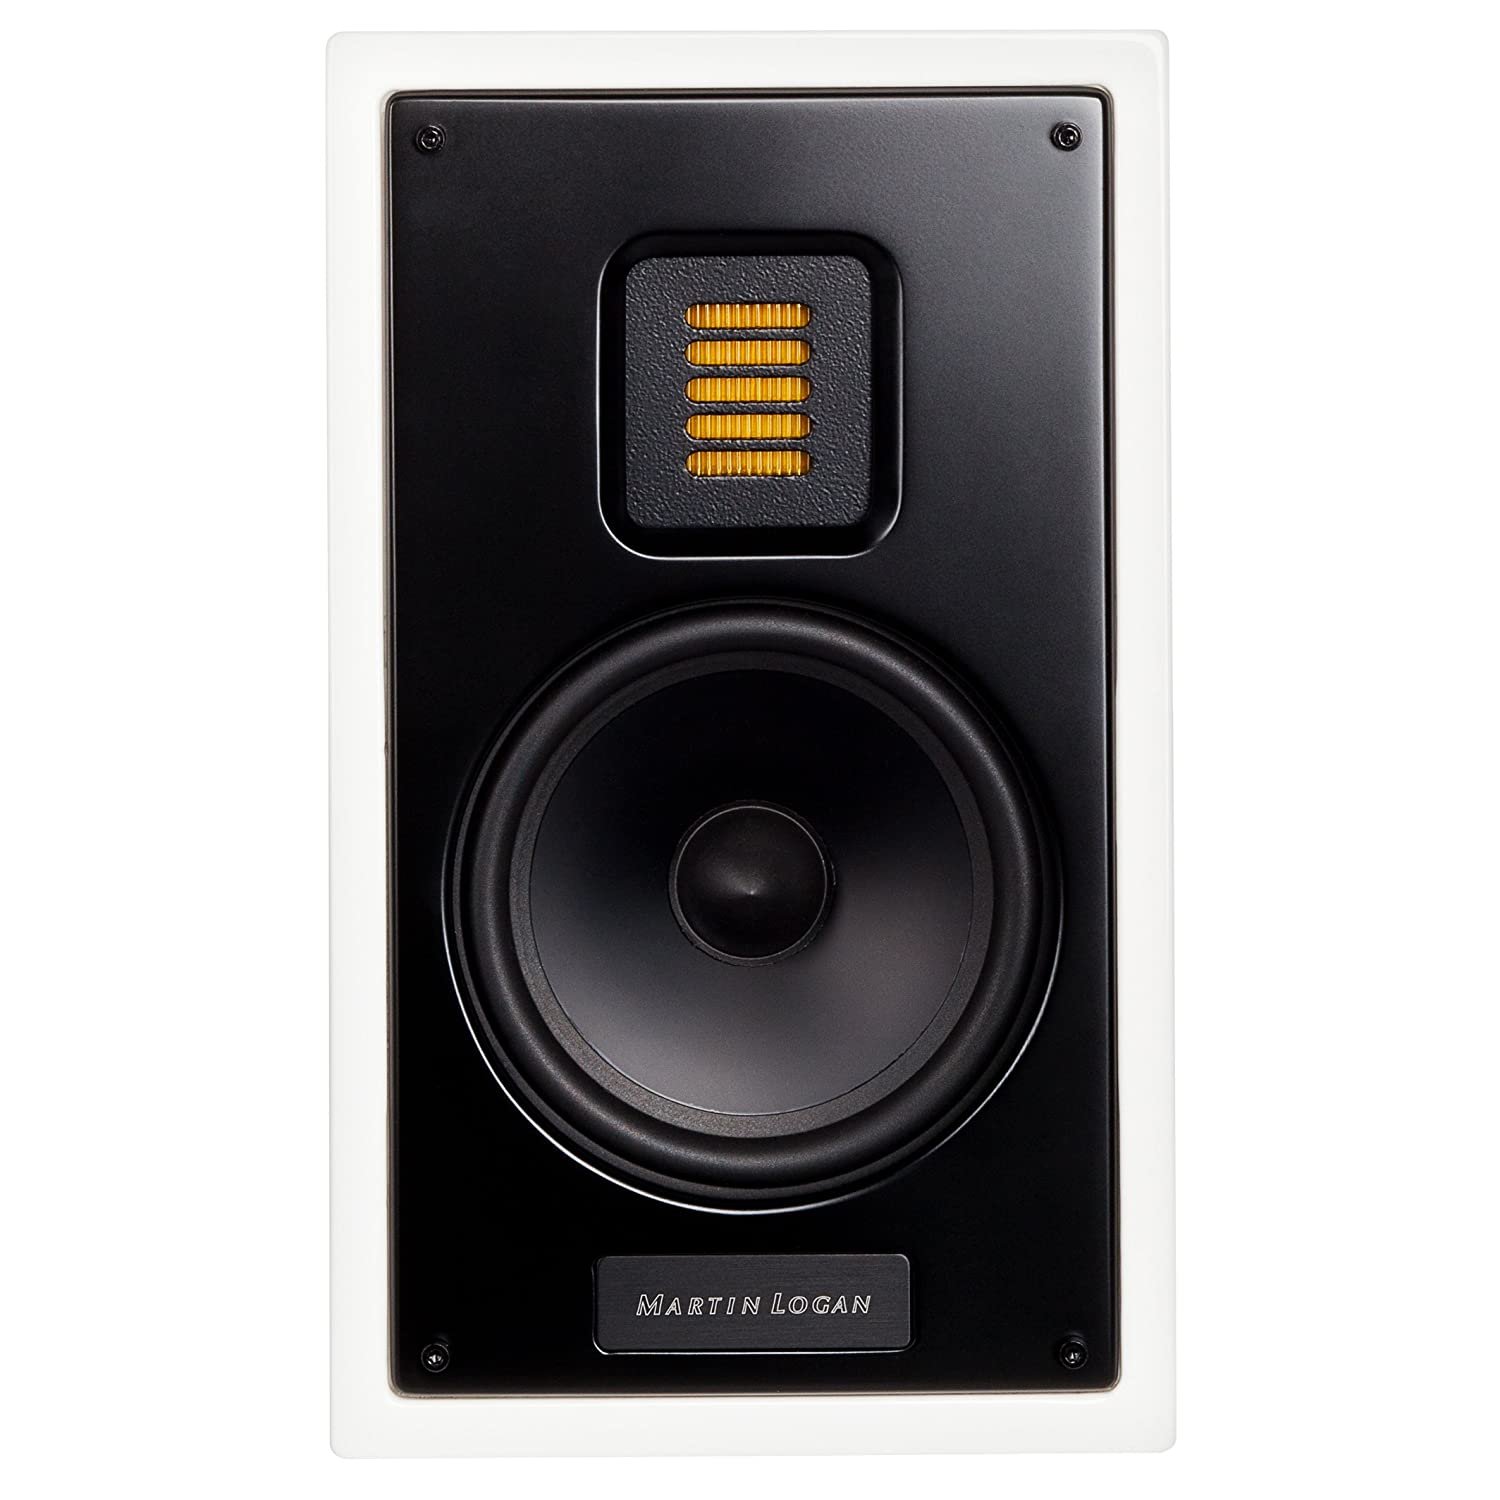 satellite speaker compact zoom safeandsoundhq logan polk audio martin speakers bookshelf signature surround